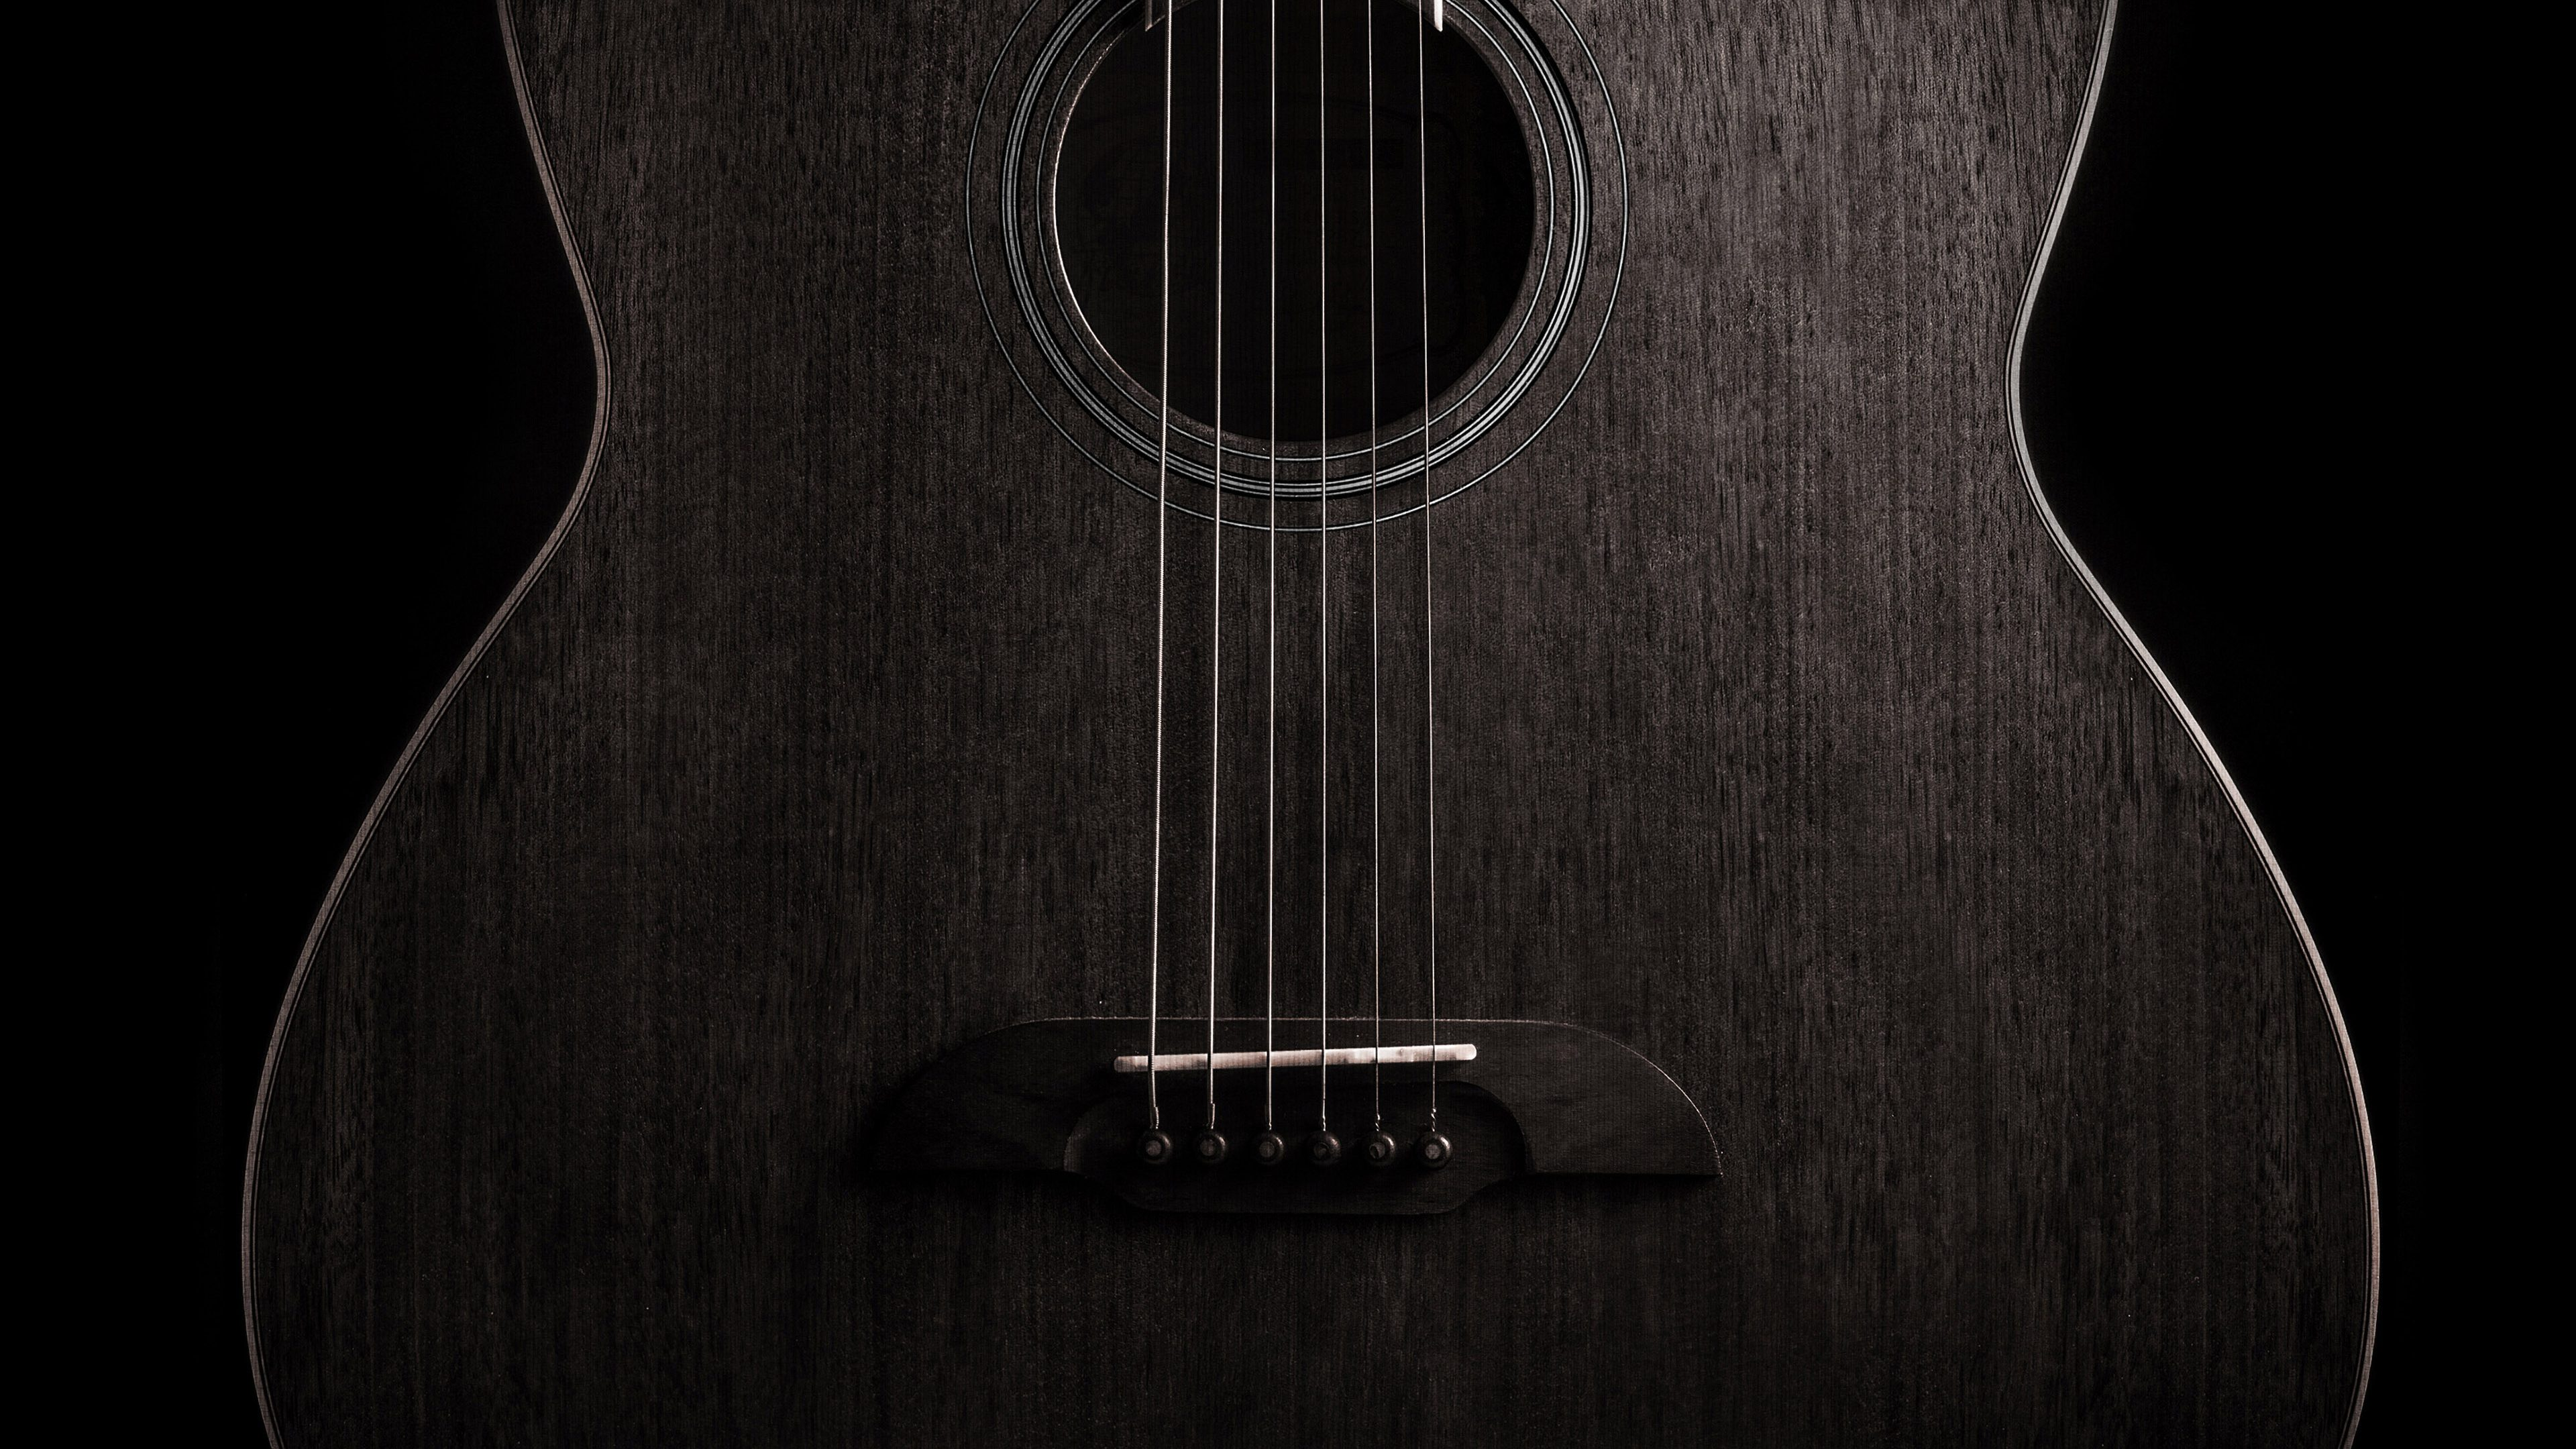 Guitar Dark Music Instrument 4k Wallpaper Best Wallpapers